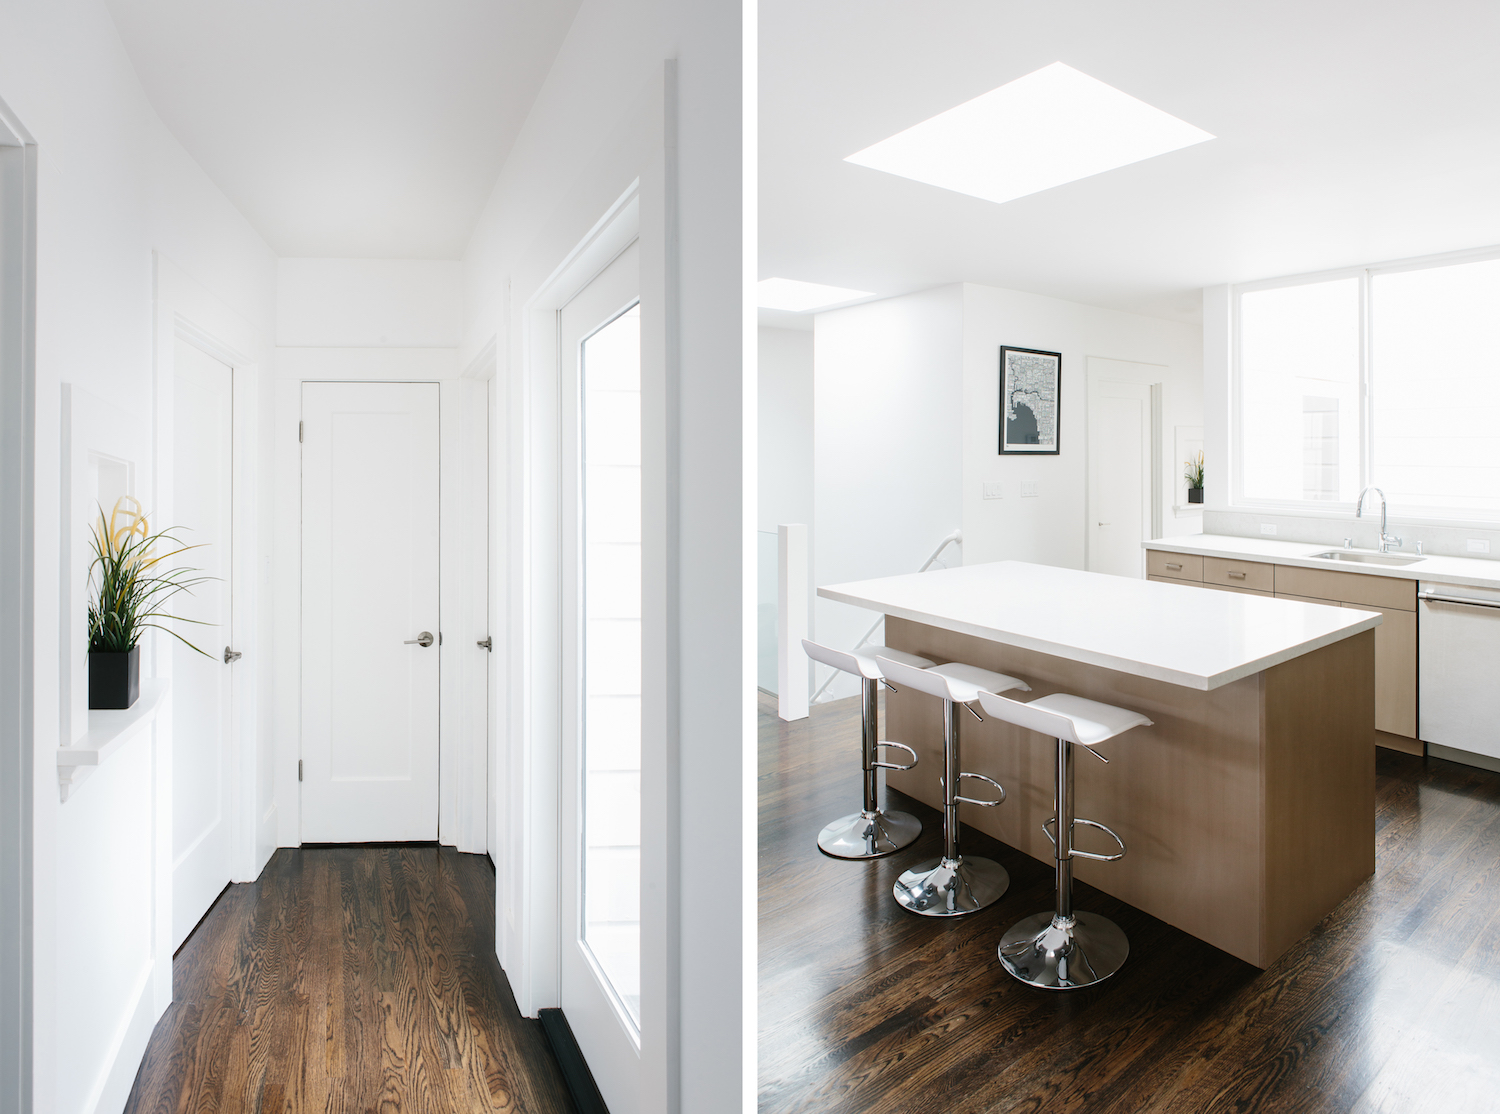 hallway with white walls and wood flooirng and kitchen with light wood cabinets and white counters and bar seating and wood flooring.jpg